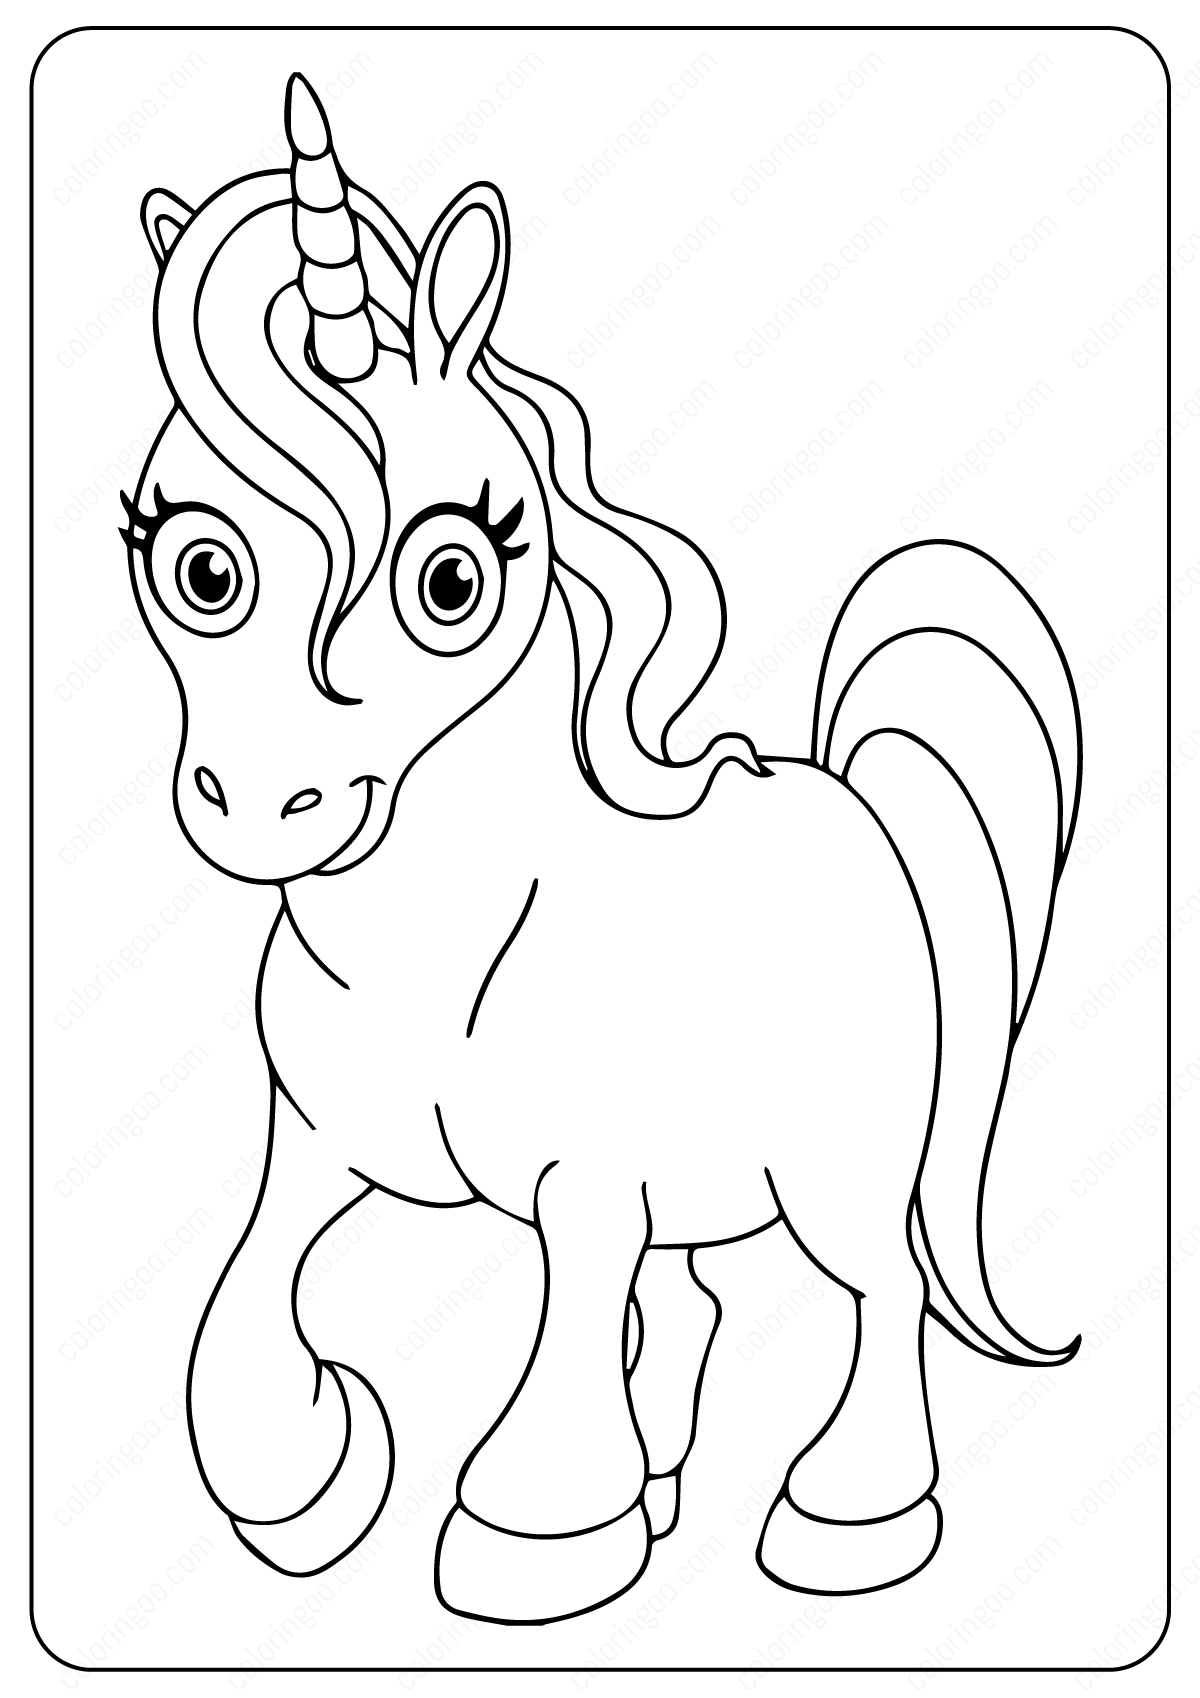 unicorn dog coloring pages dog coloring pages for adults swear word coloring pages pages unicorn coloring dog